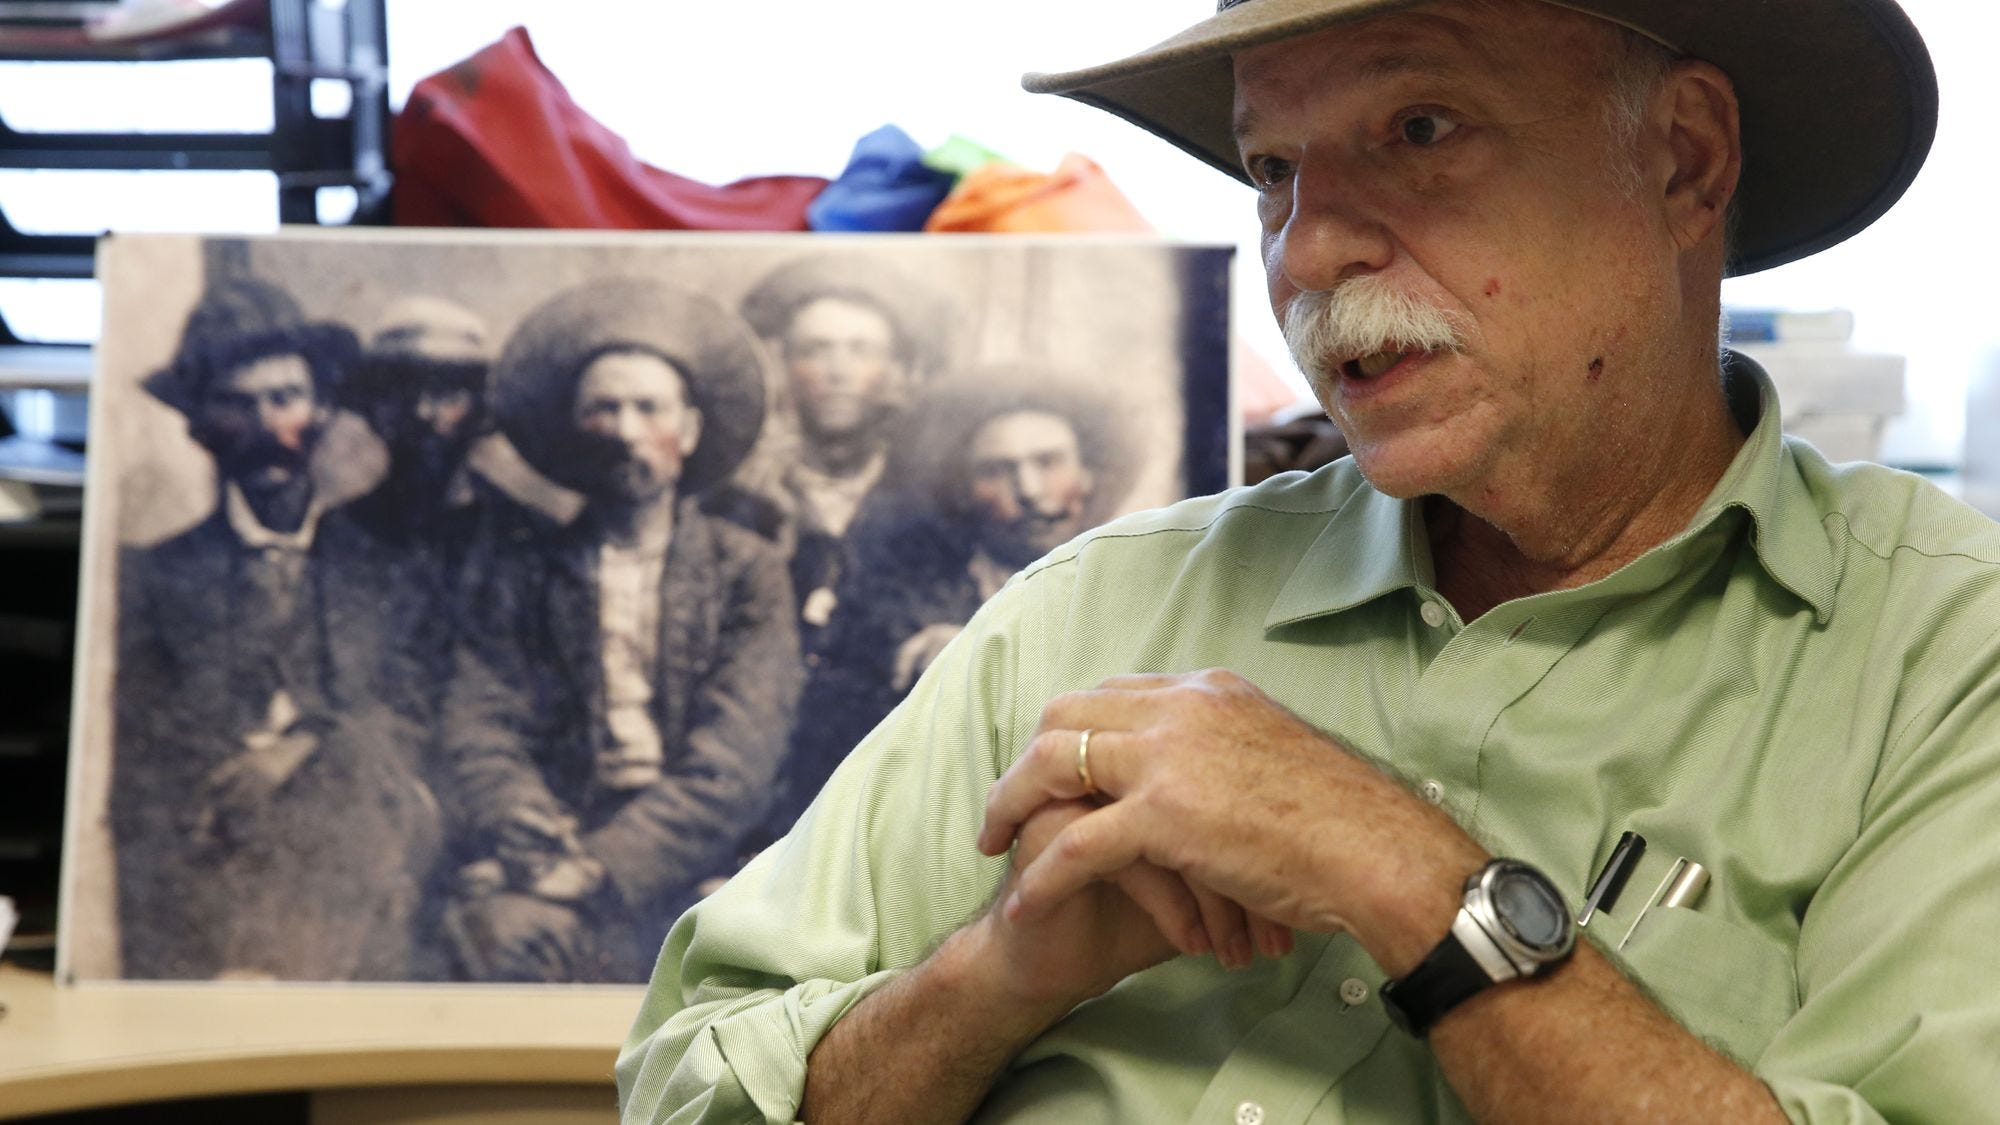 135 year old image may capture famous outlaw billy the kid